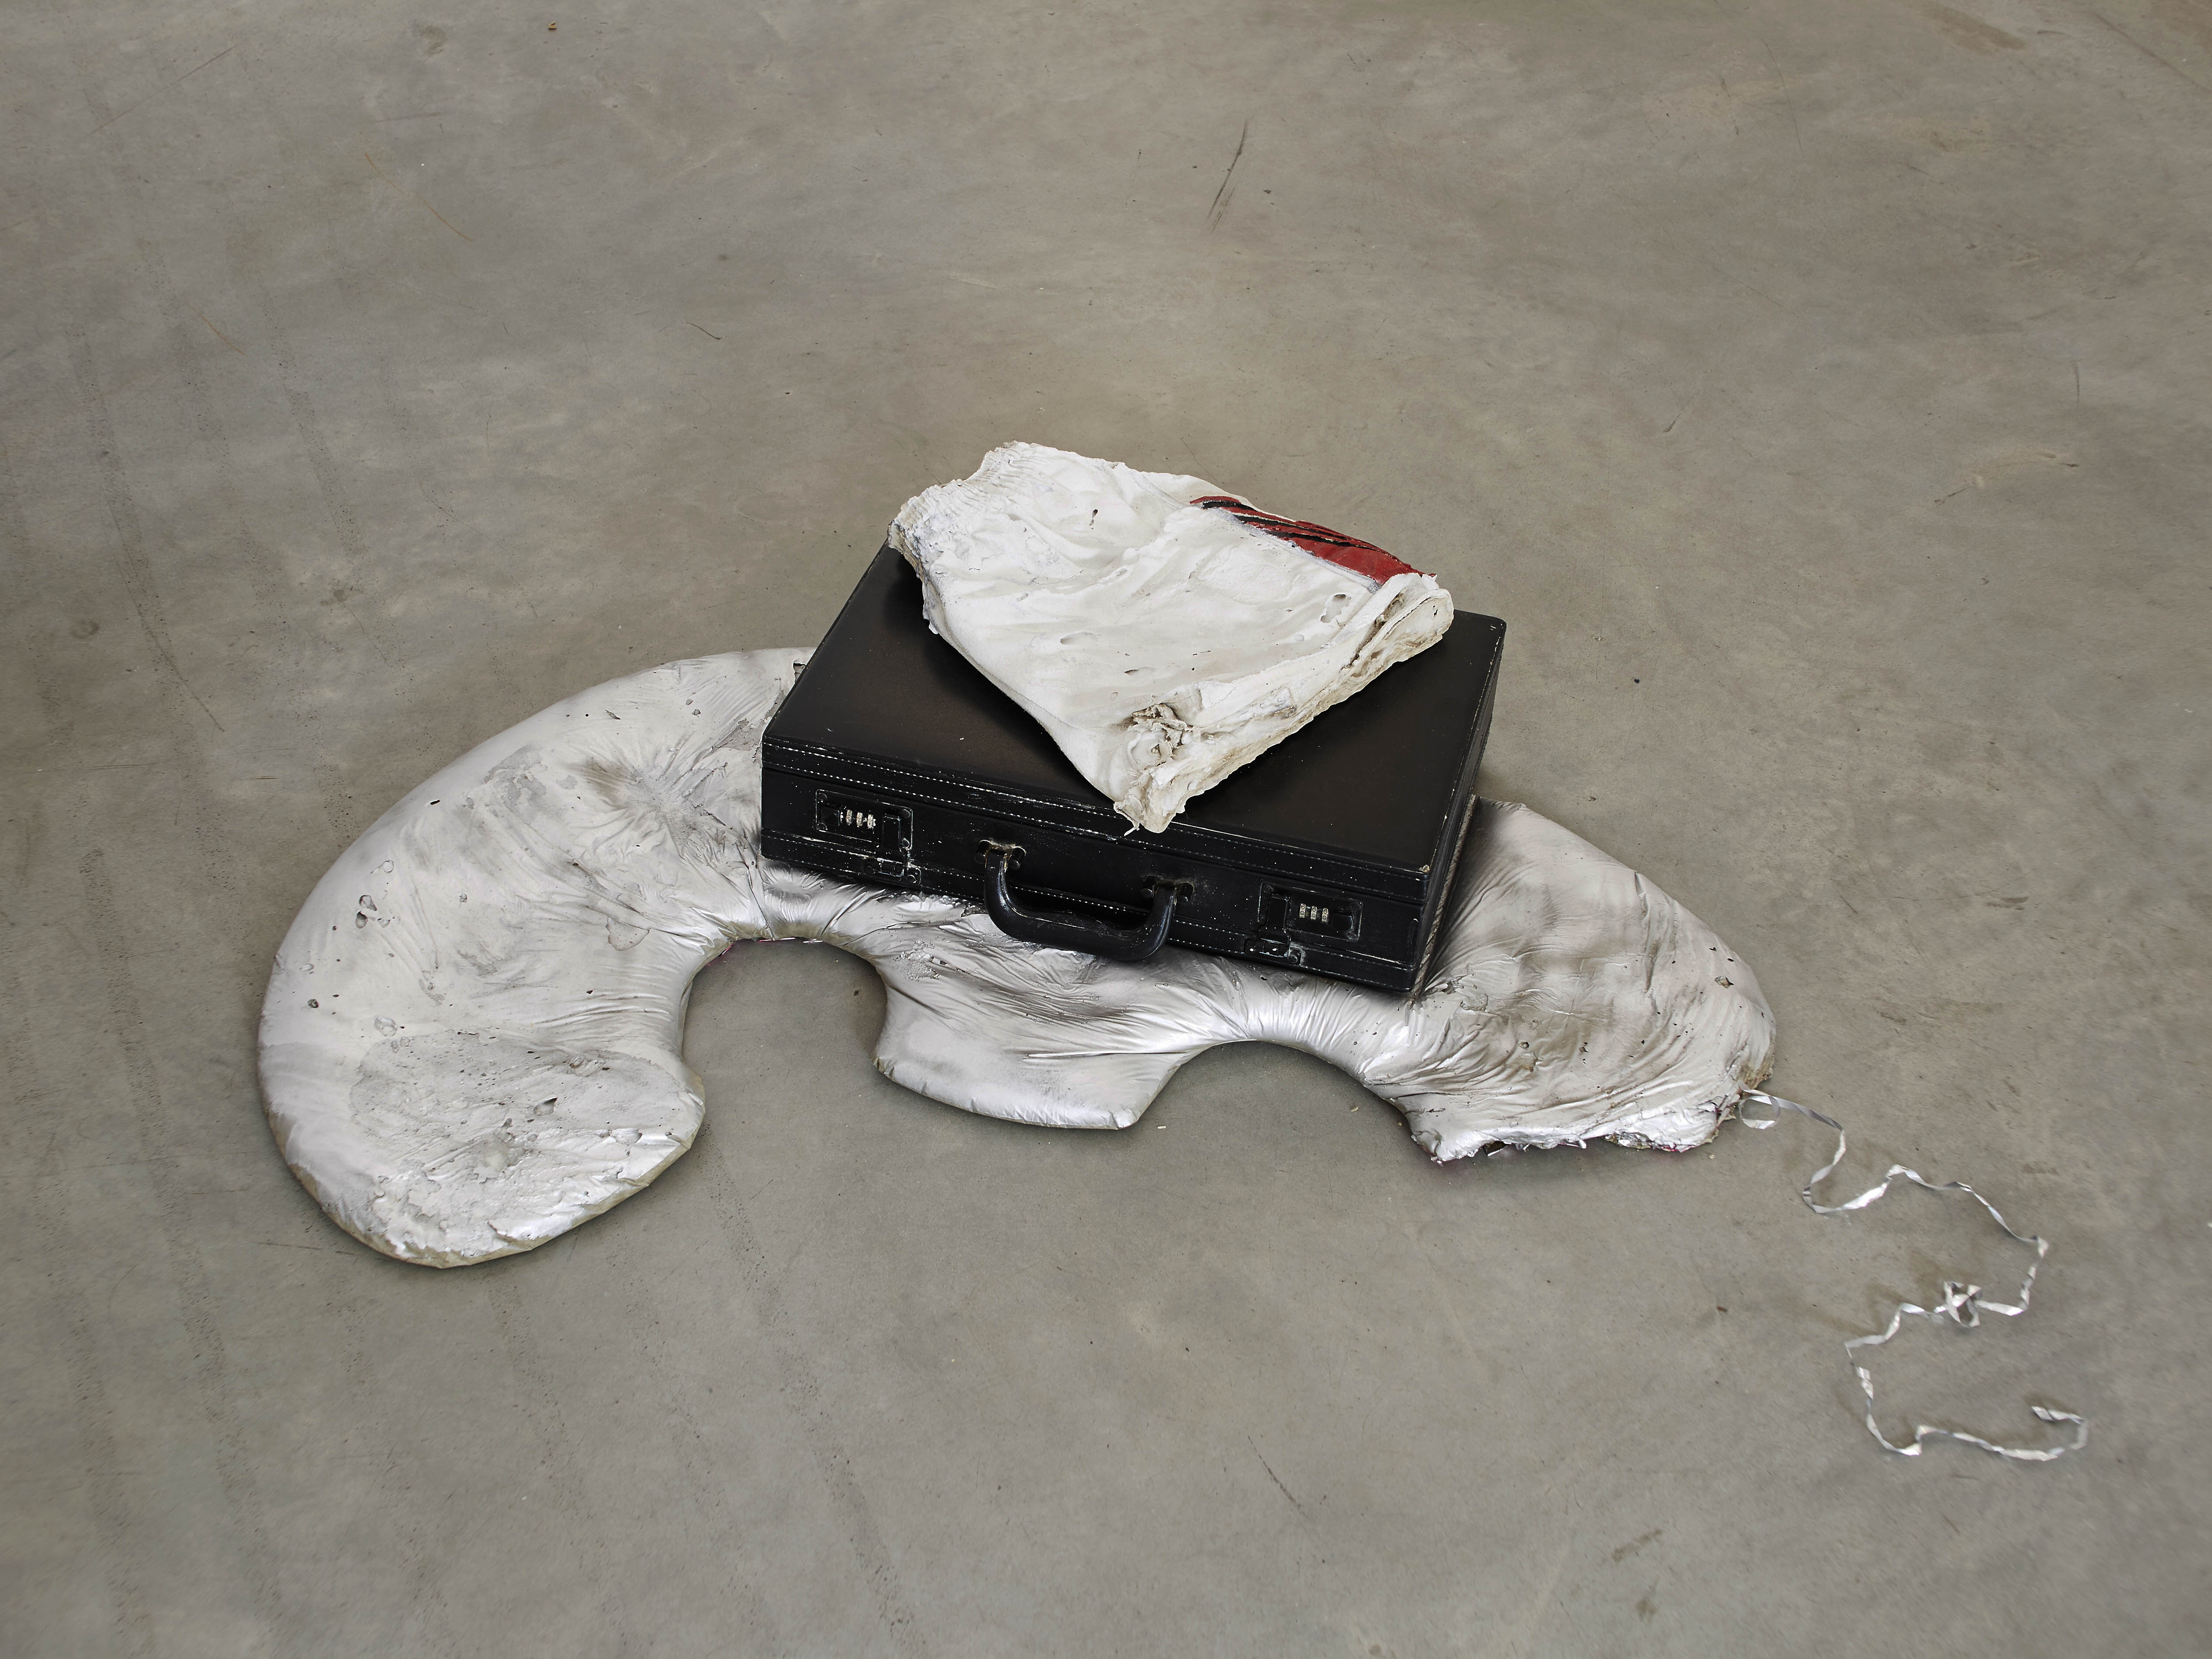 rose-salane-football-2016-found-briefcase-with-painted-plaster-cast-dimensions-variable-17-x-87-x-51-cm-edited